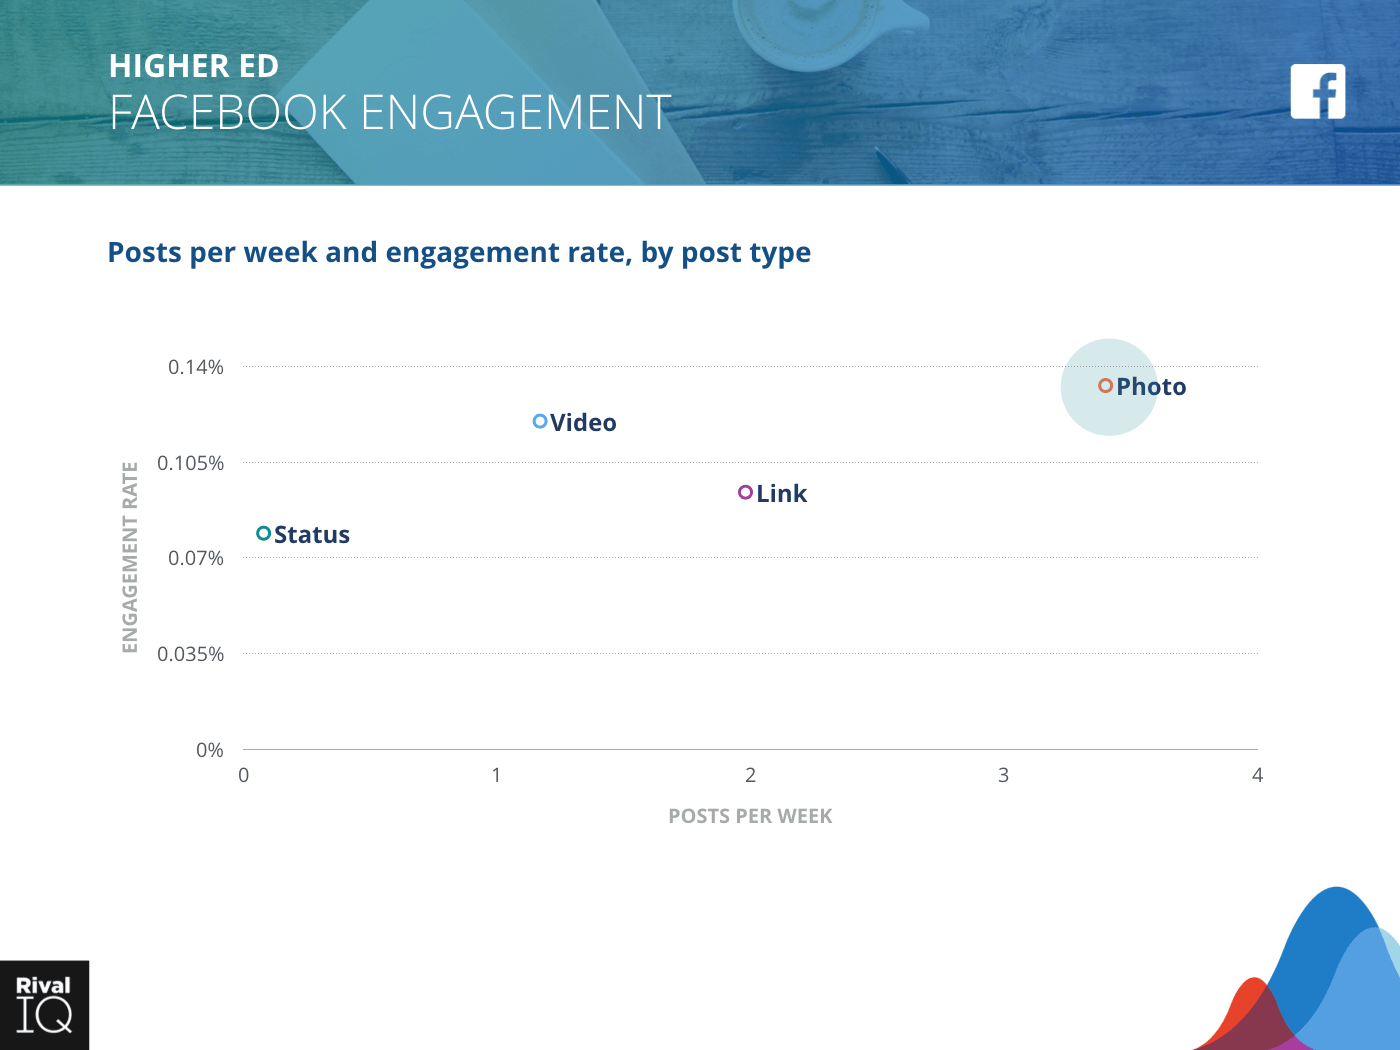 Higher Ed Industry: scatter graph, average post per week by type and engagement rate on Facebook